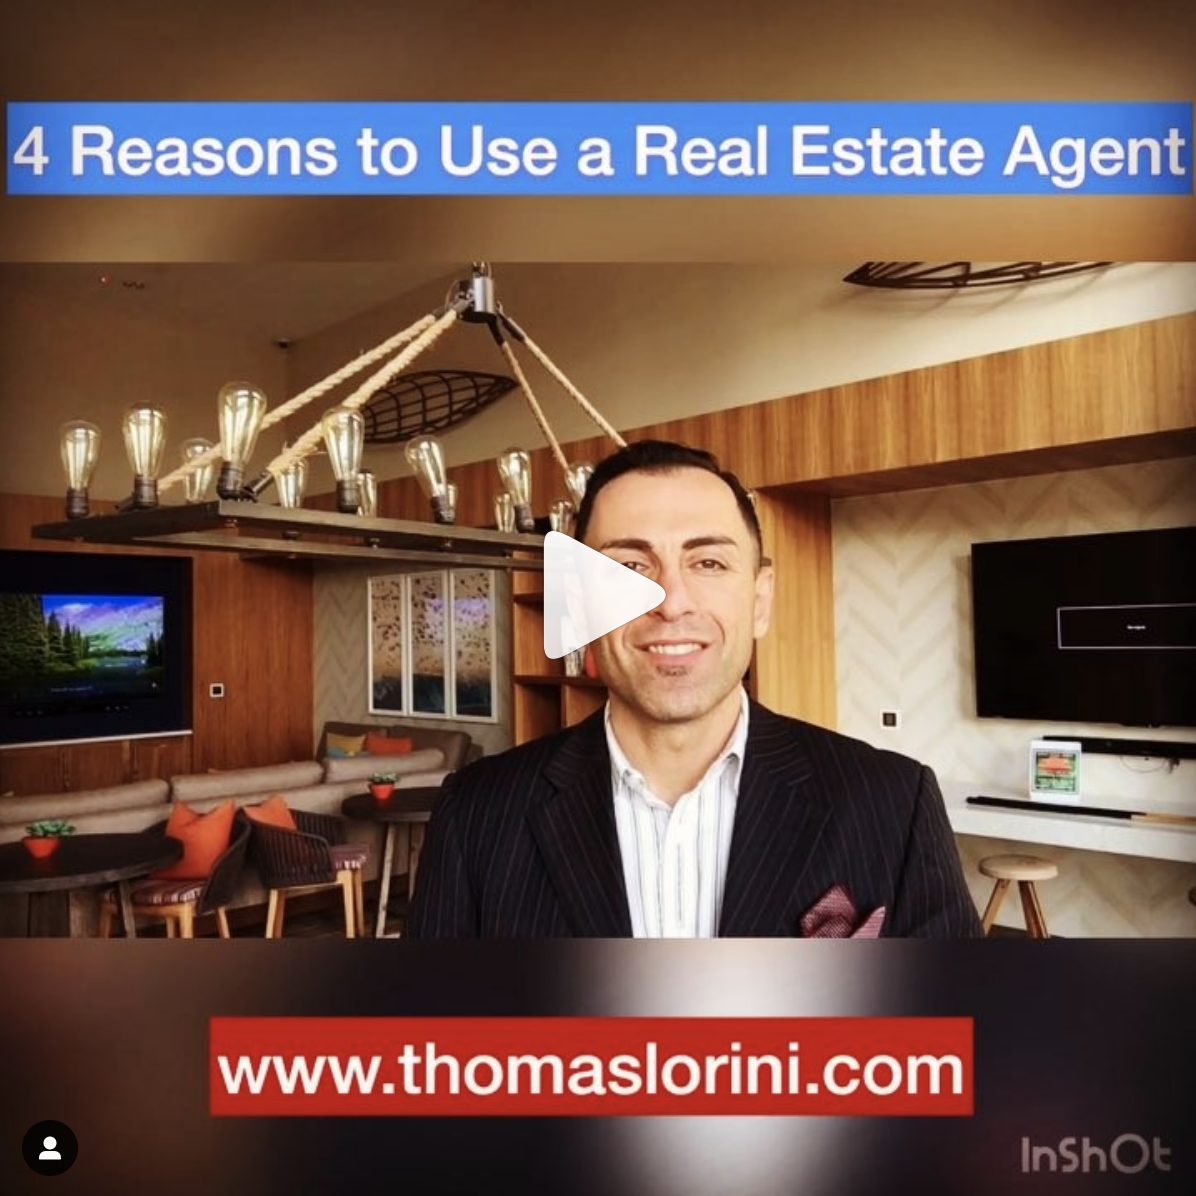 4 Reasons to Use a Real Estate Agent